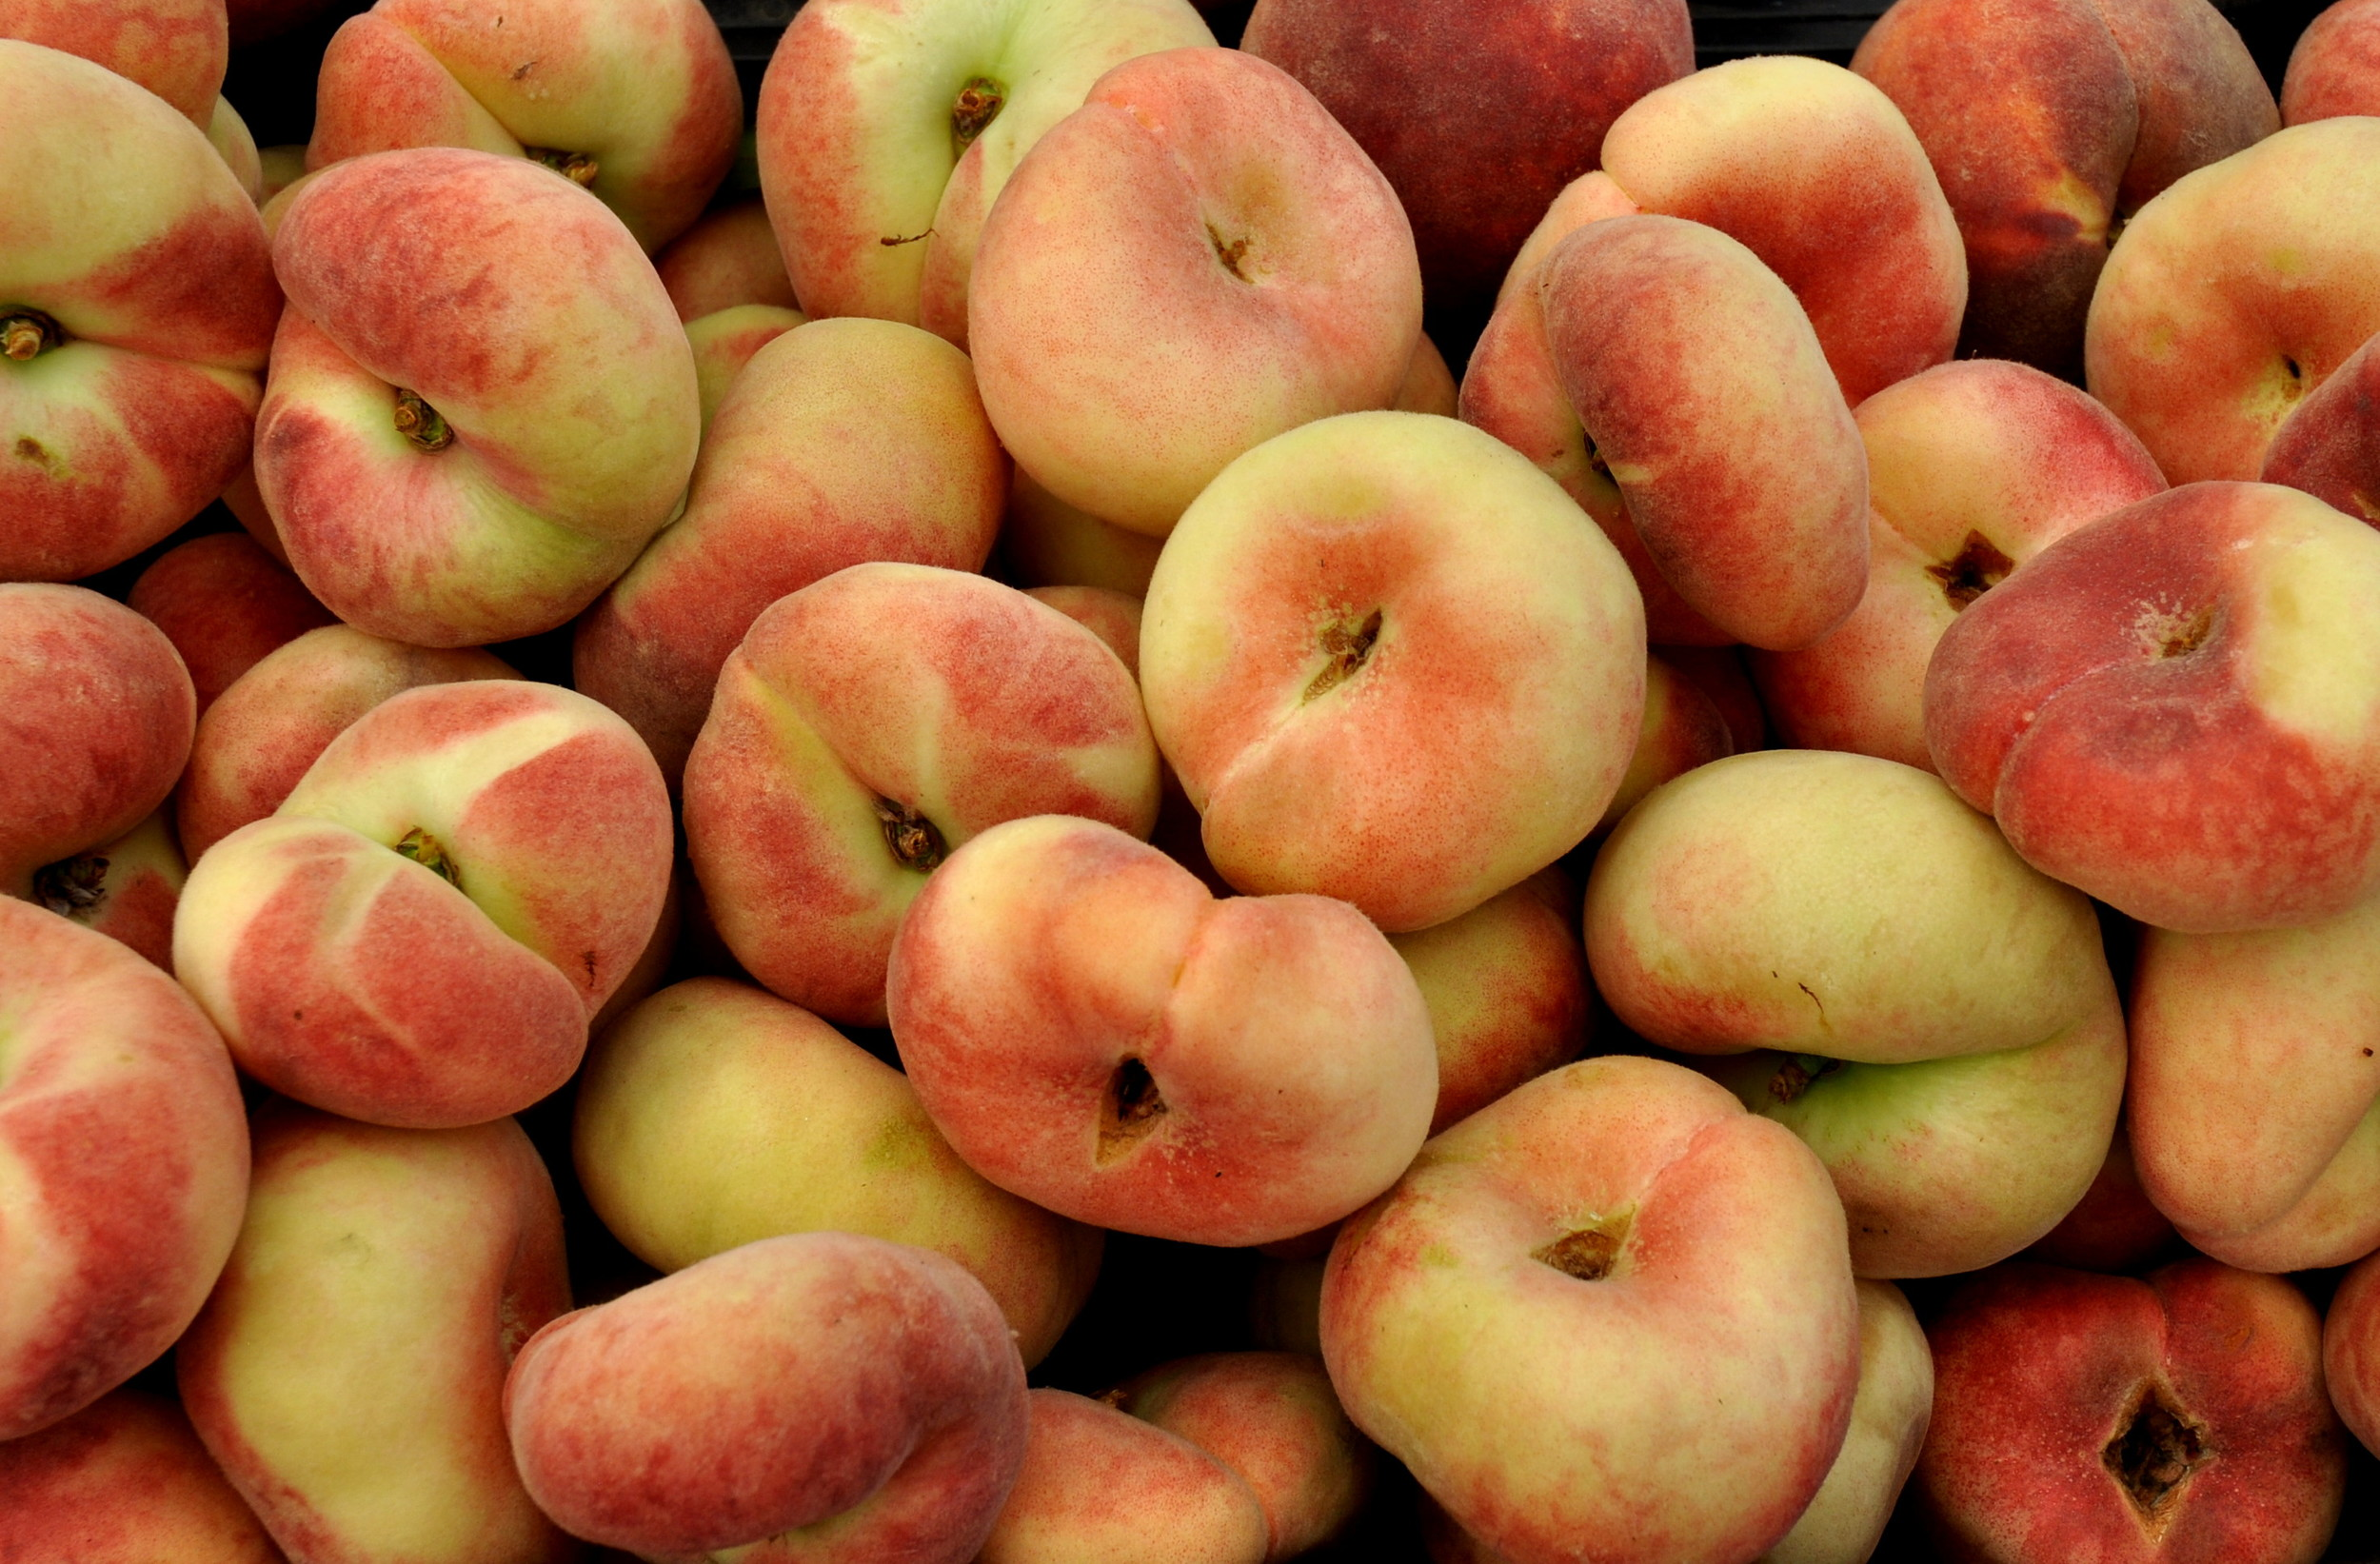 Donut peaches from Magana Farms. Photo copyright 2013 by Zachary D. Lyons.